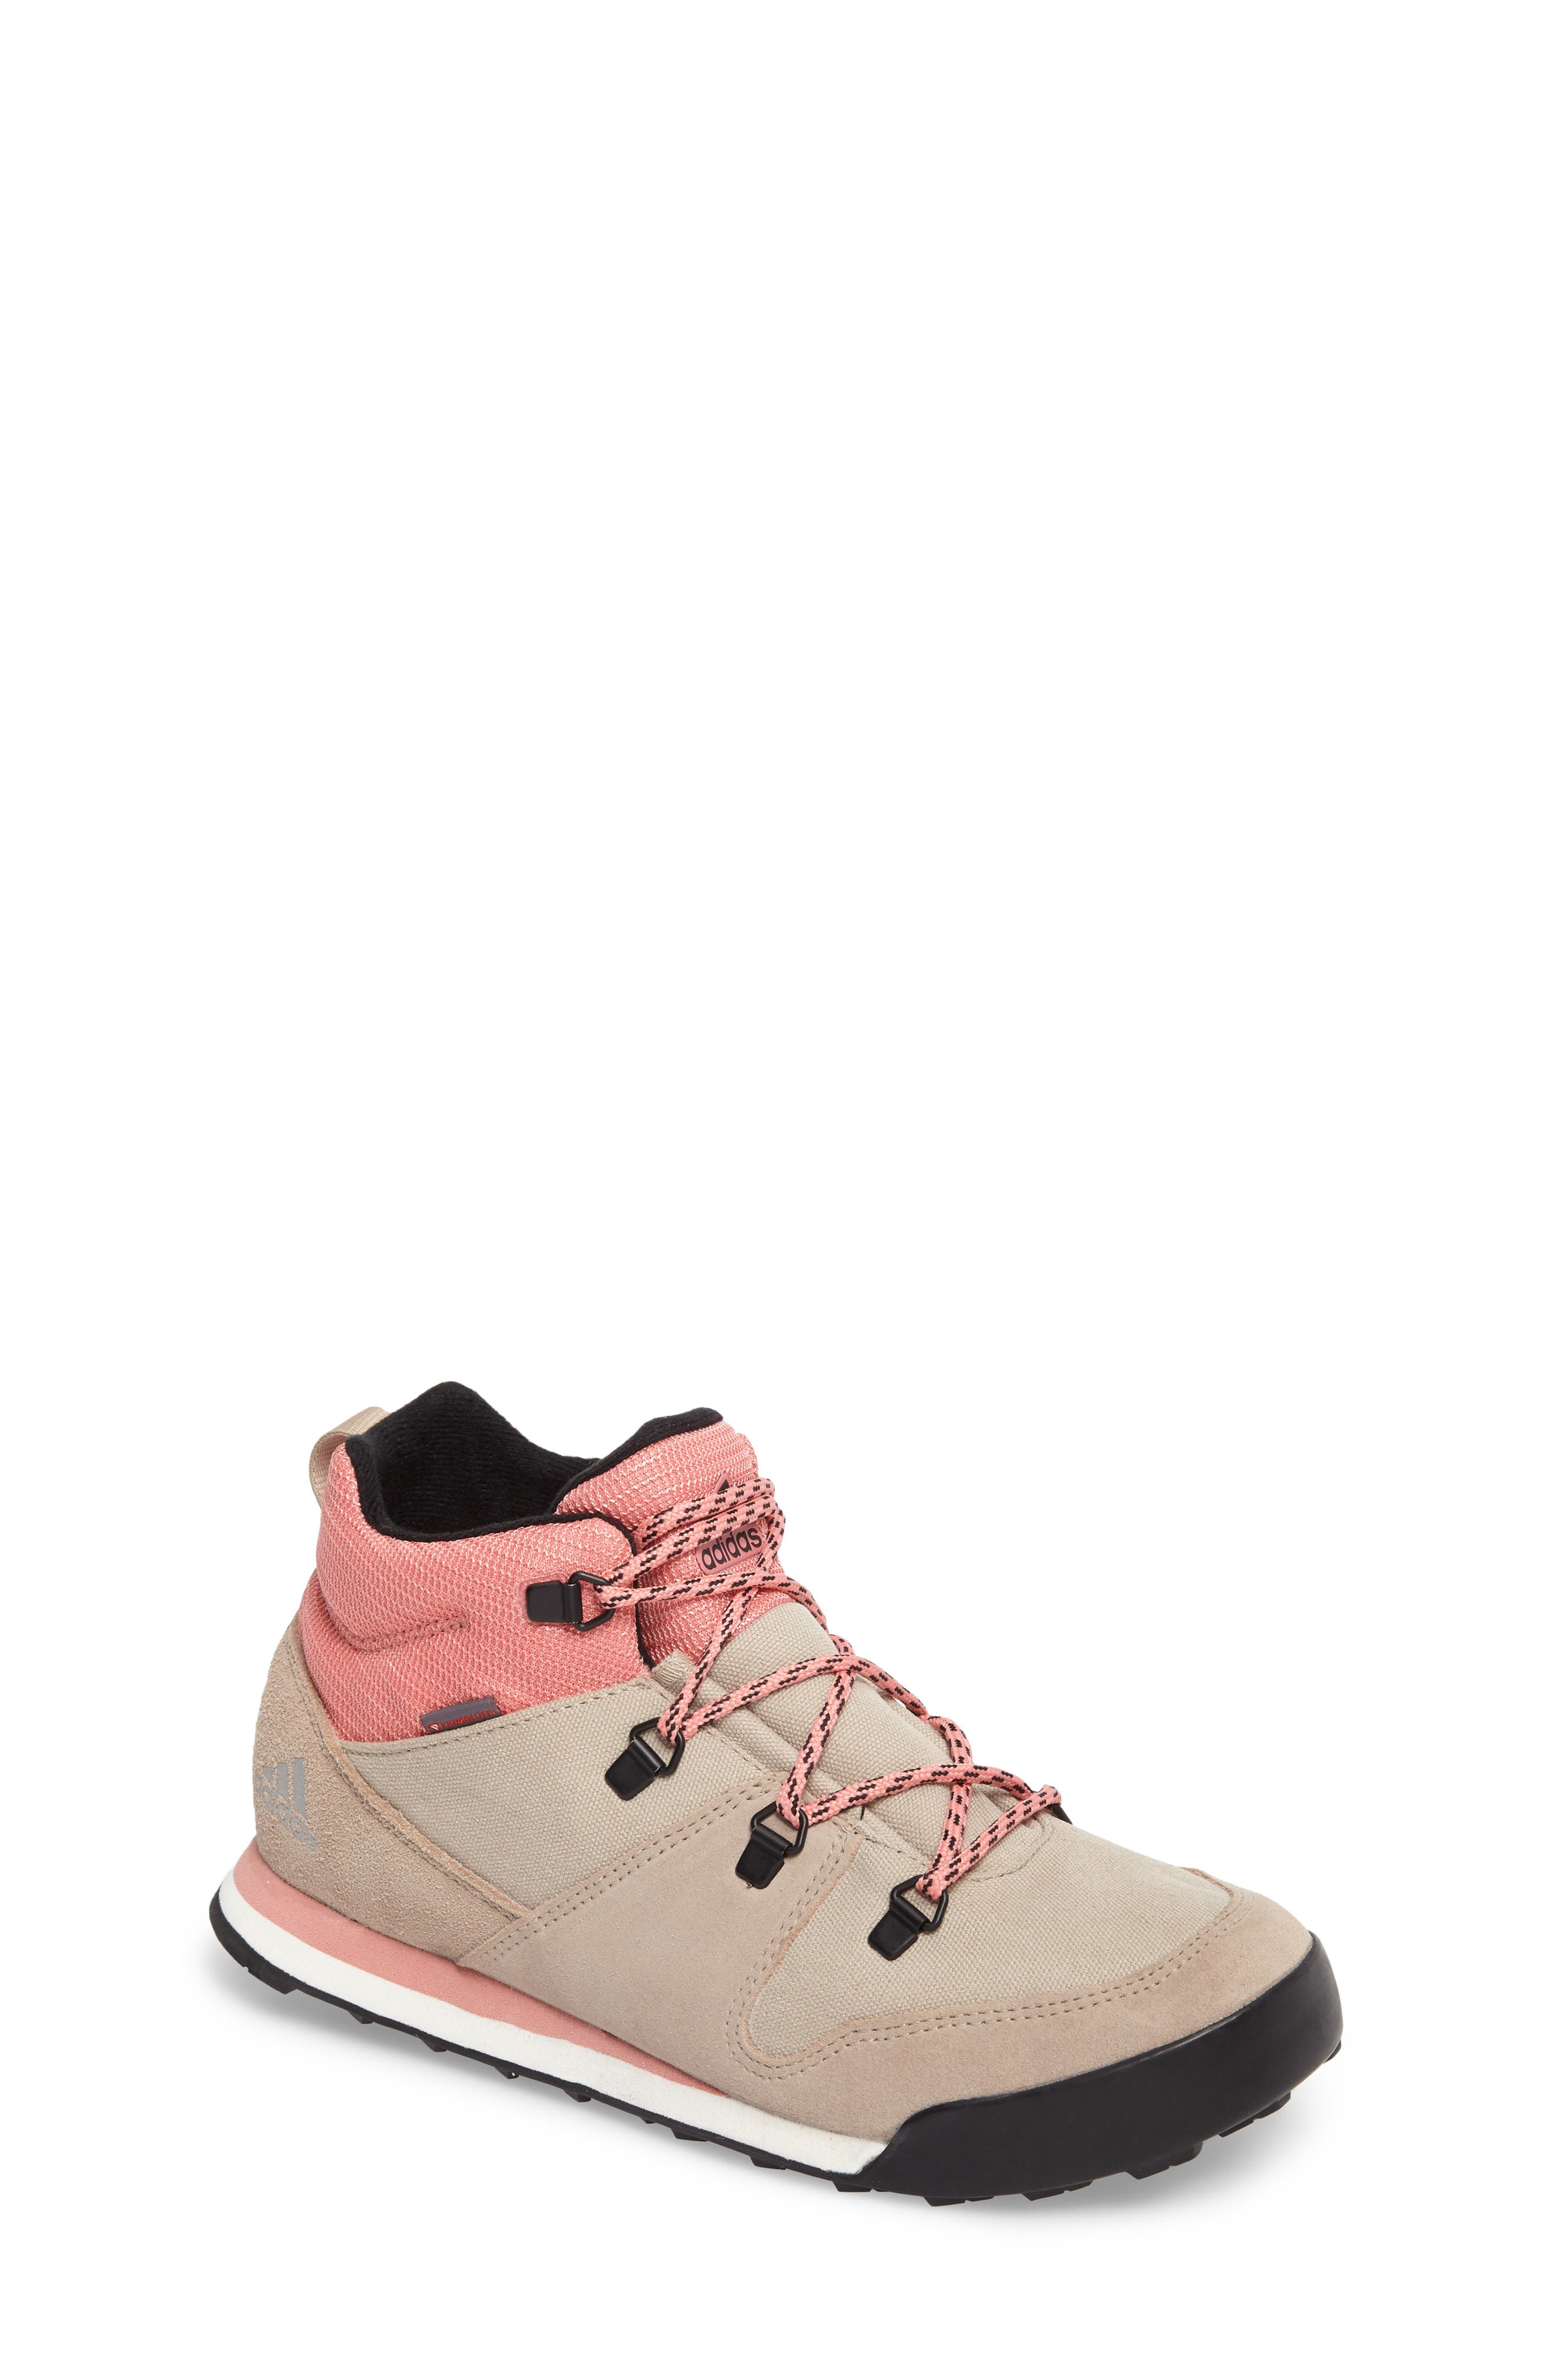 Snowpitch Insulated Sneaker Boot,                             Main thumbnail 1, color,                             Icey Pink/ Khaki/ Energy Pink